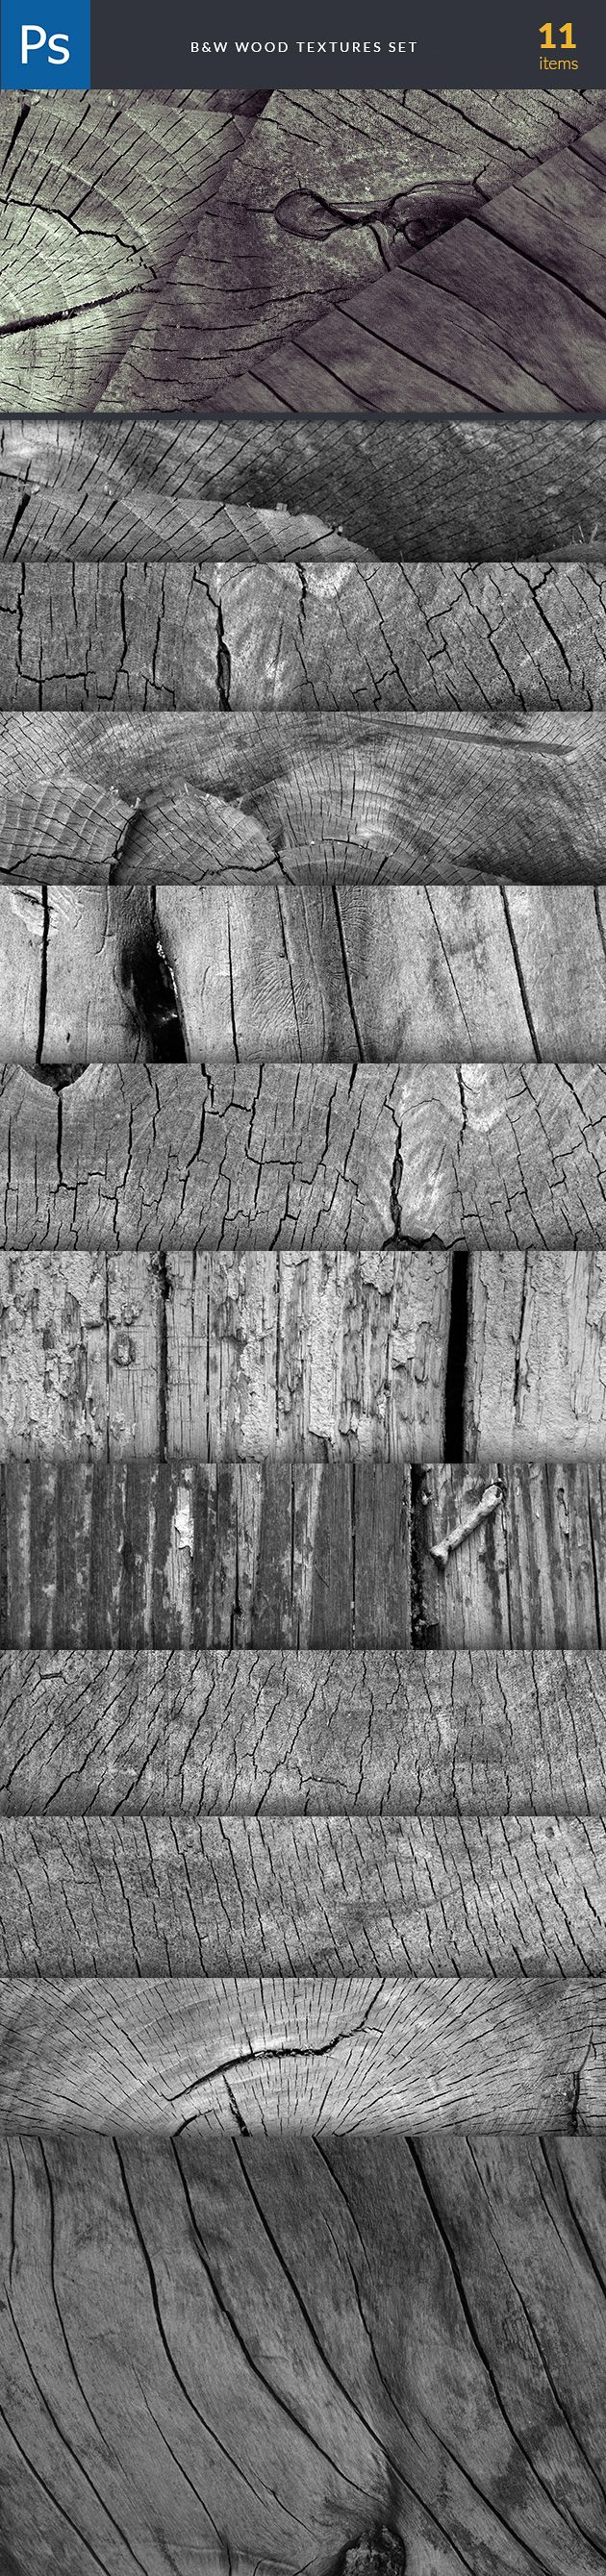 B&W Wood textures are part of The Ultimate Textures Bundle. Find and buy them here: https://www.inkydeals.com/deal/the-ultimate-textures-bundle-2/